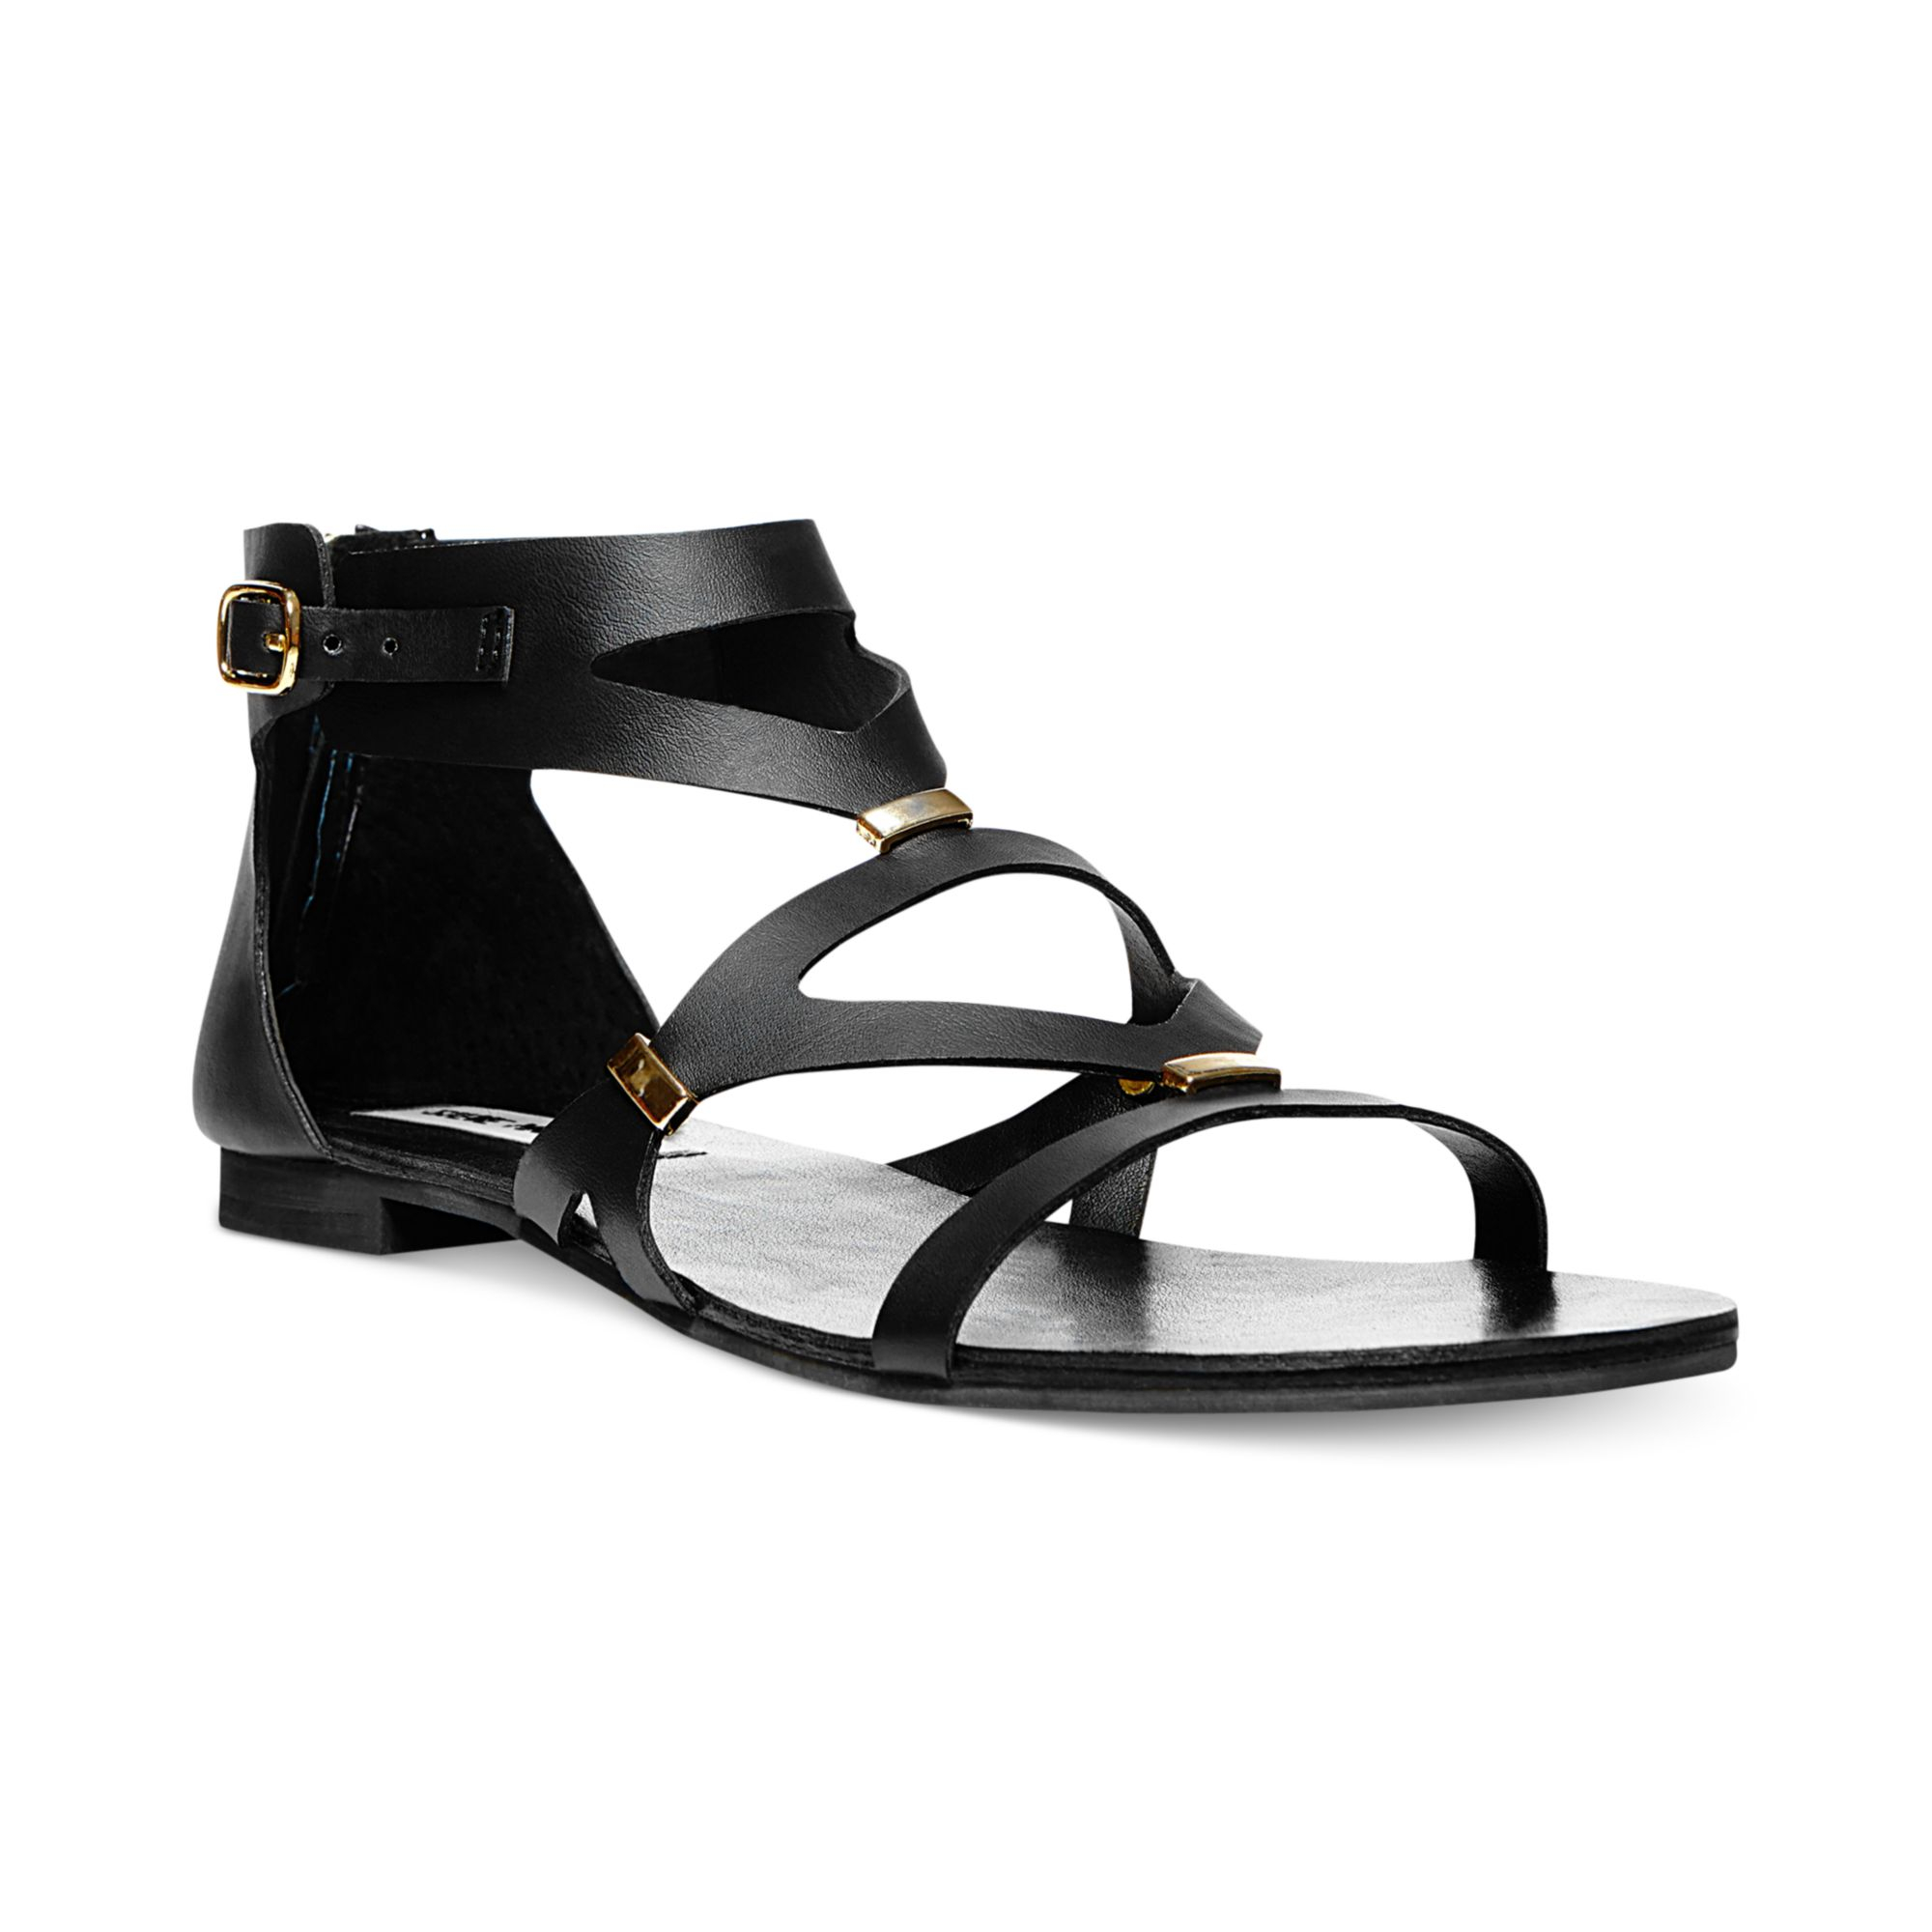 Innovative  Sandals  Albano  Albano Lanval Black Suede Women39s Flat Sandal